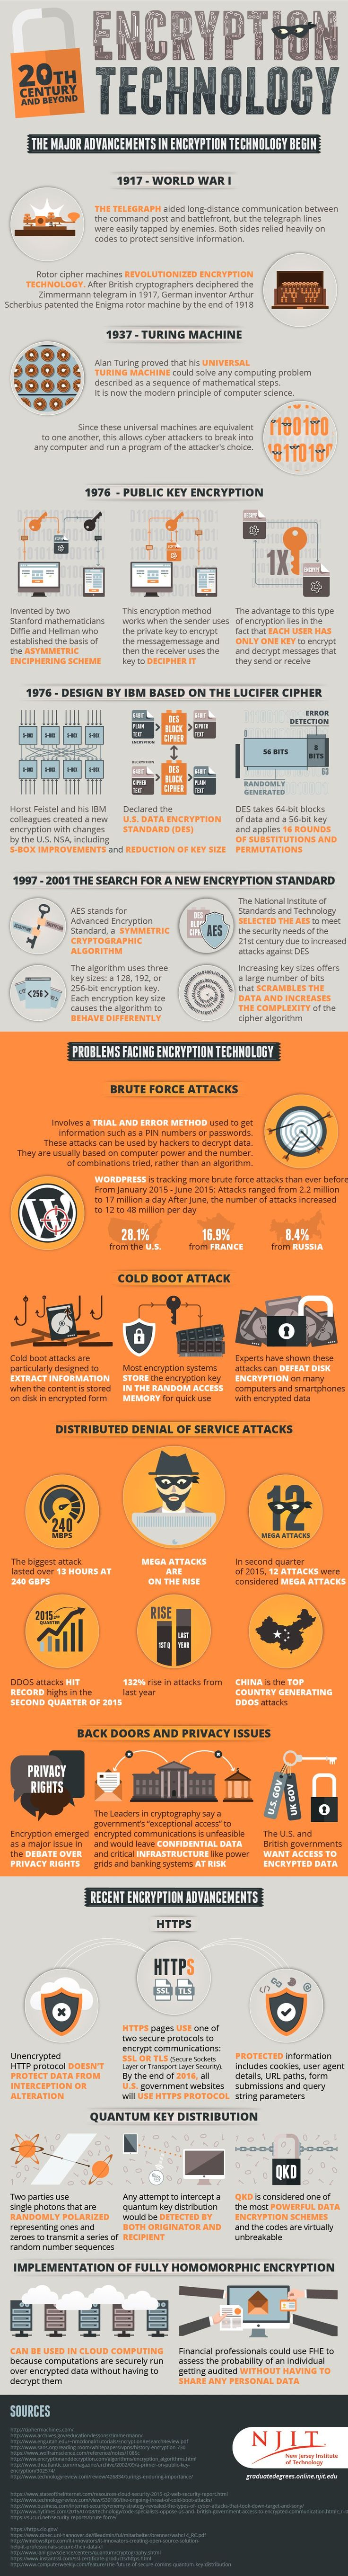 Major Advancements in Encryption Technology and Cyber Security - Imgur 700 digit...